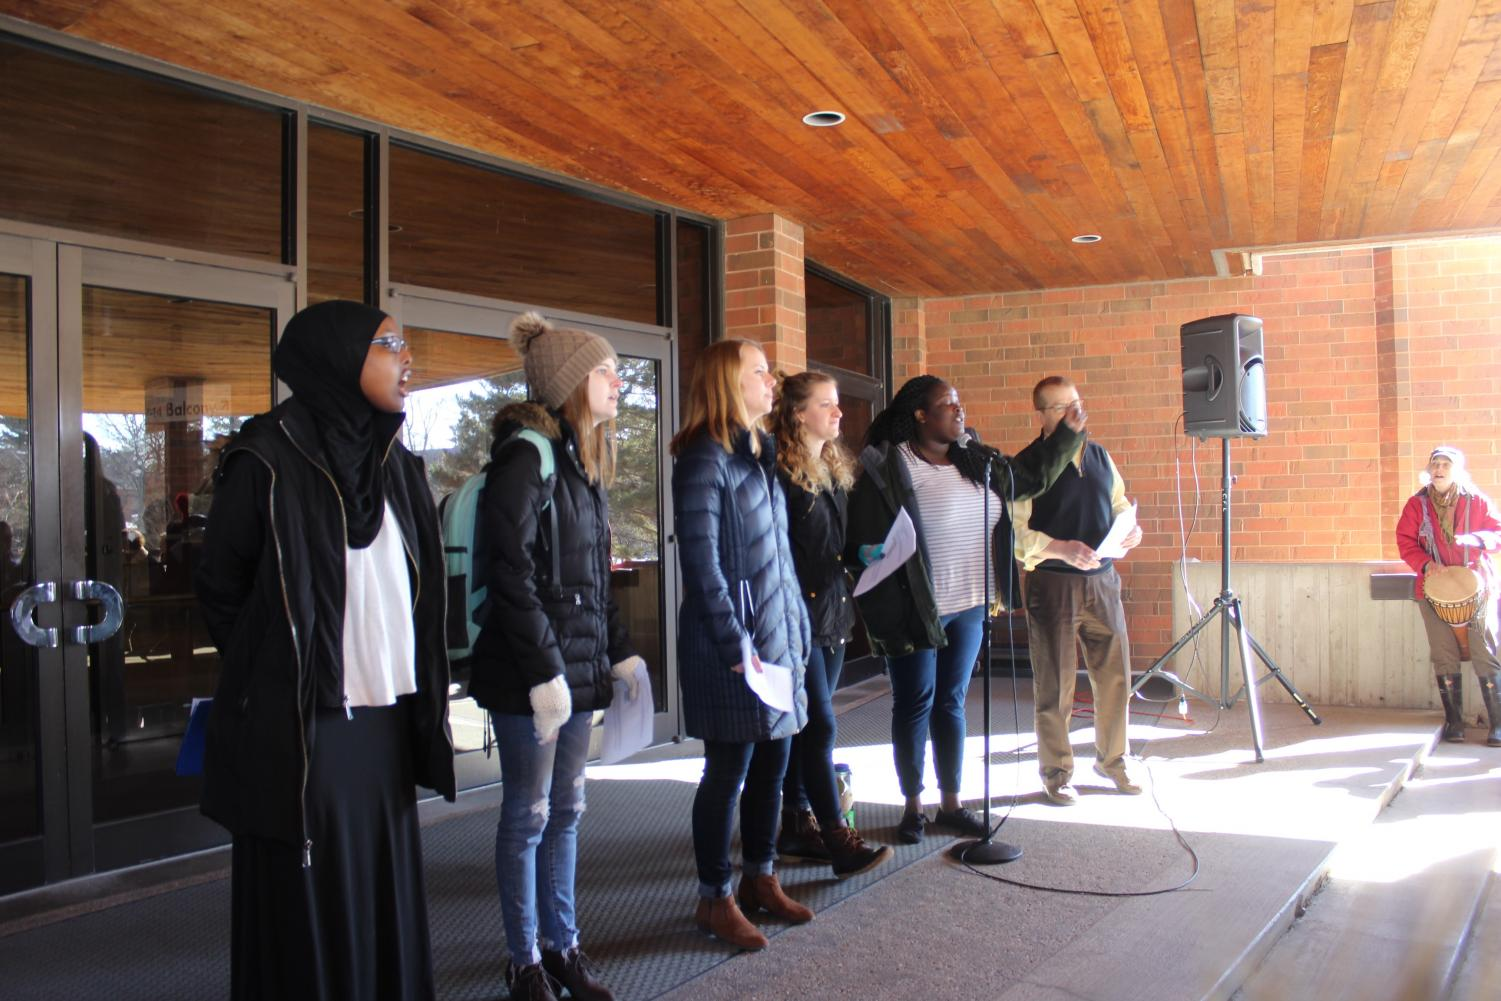 Asha Aden ('20), Katie Moon ('19), Forrest Schrader ('18), Johanna Beaupre ('18), Janet Irakunda ('19), and College Pastor Mike Blair lead attendees in song, talk and prayer.